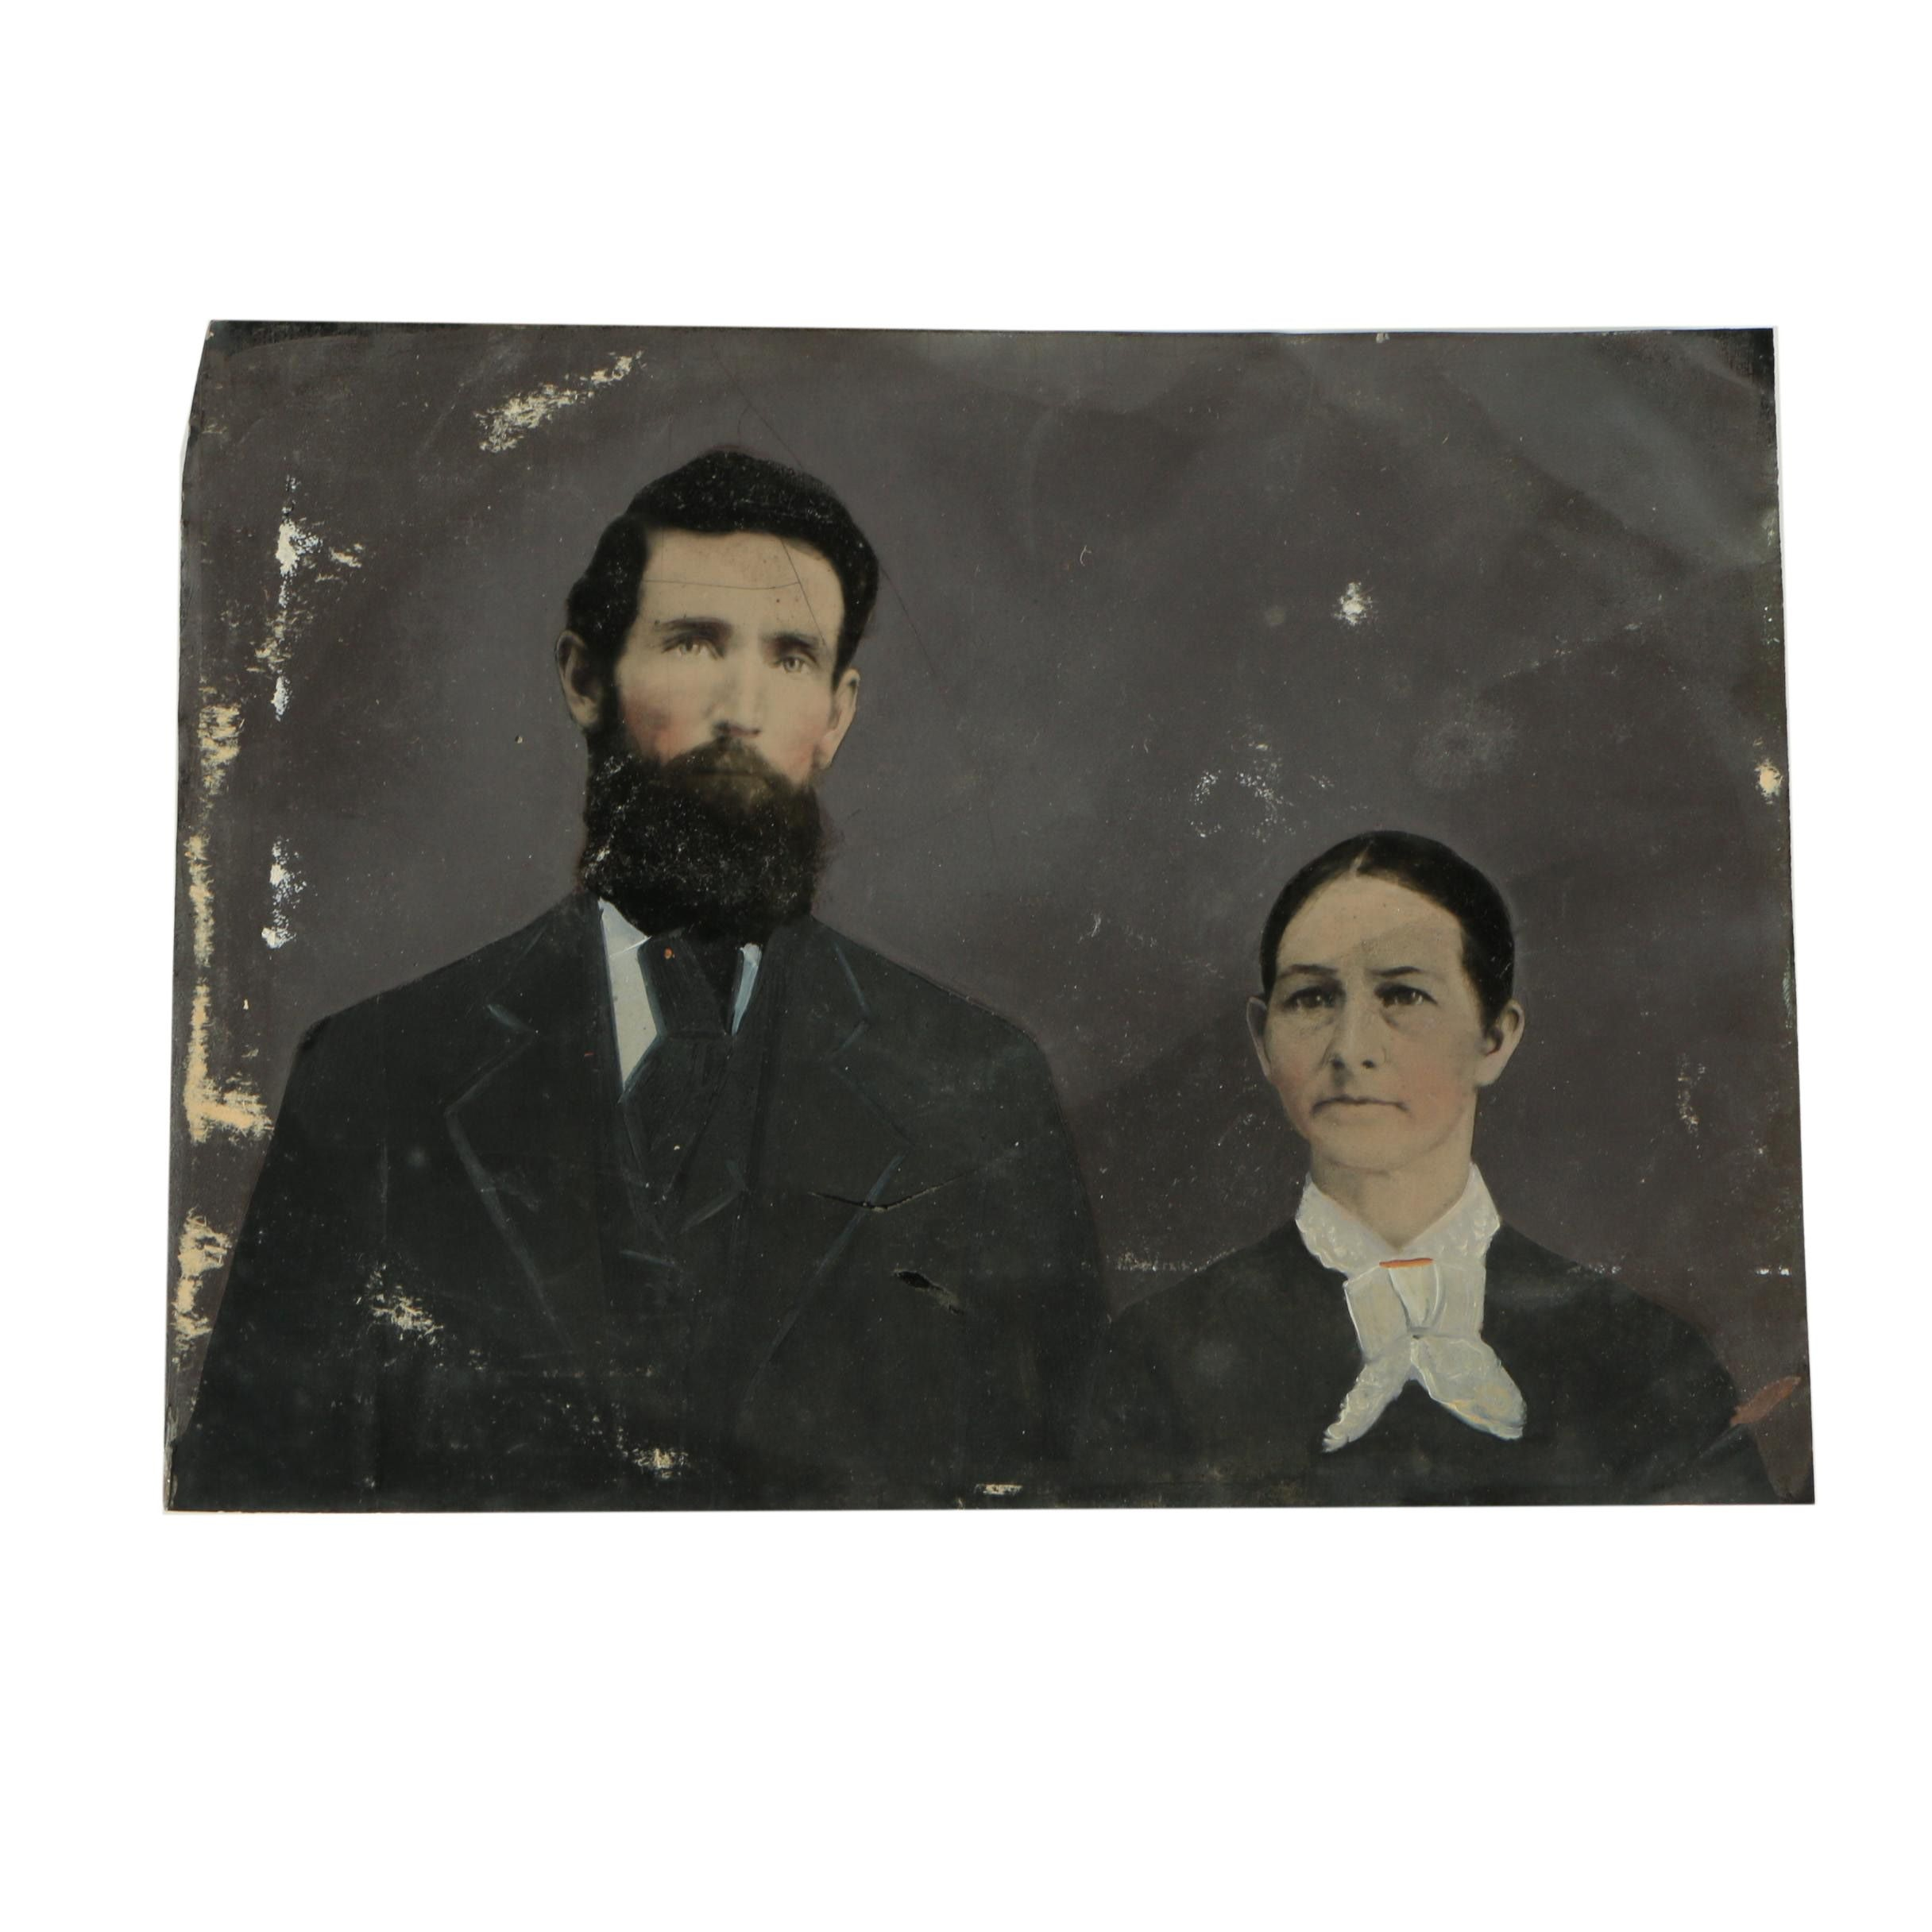 Antique 19th-Century Hand-Embellished Tintype Portrait of Couple